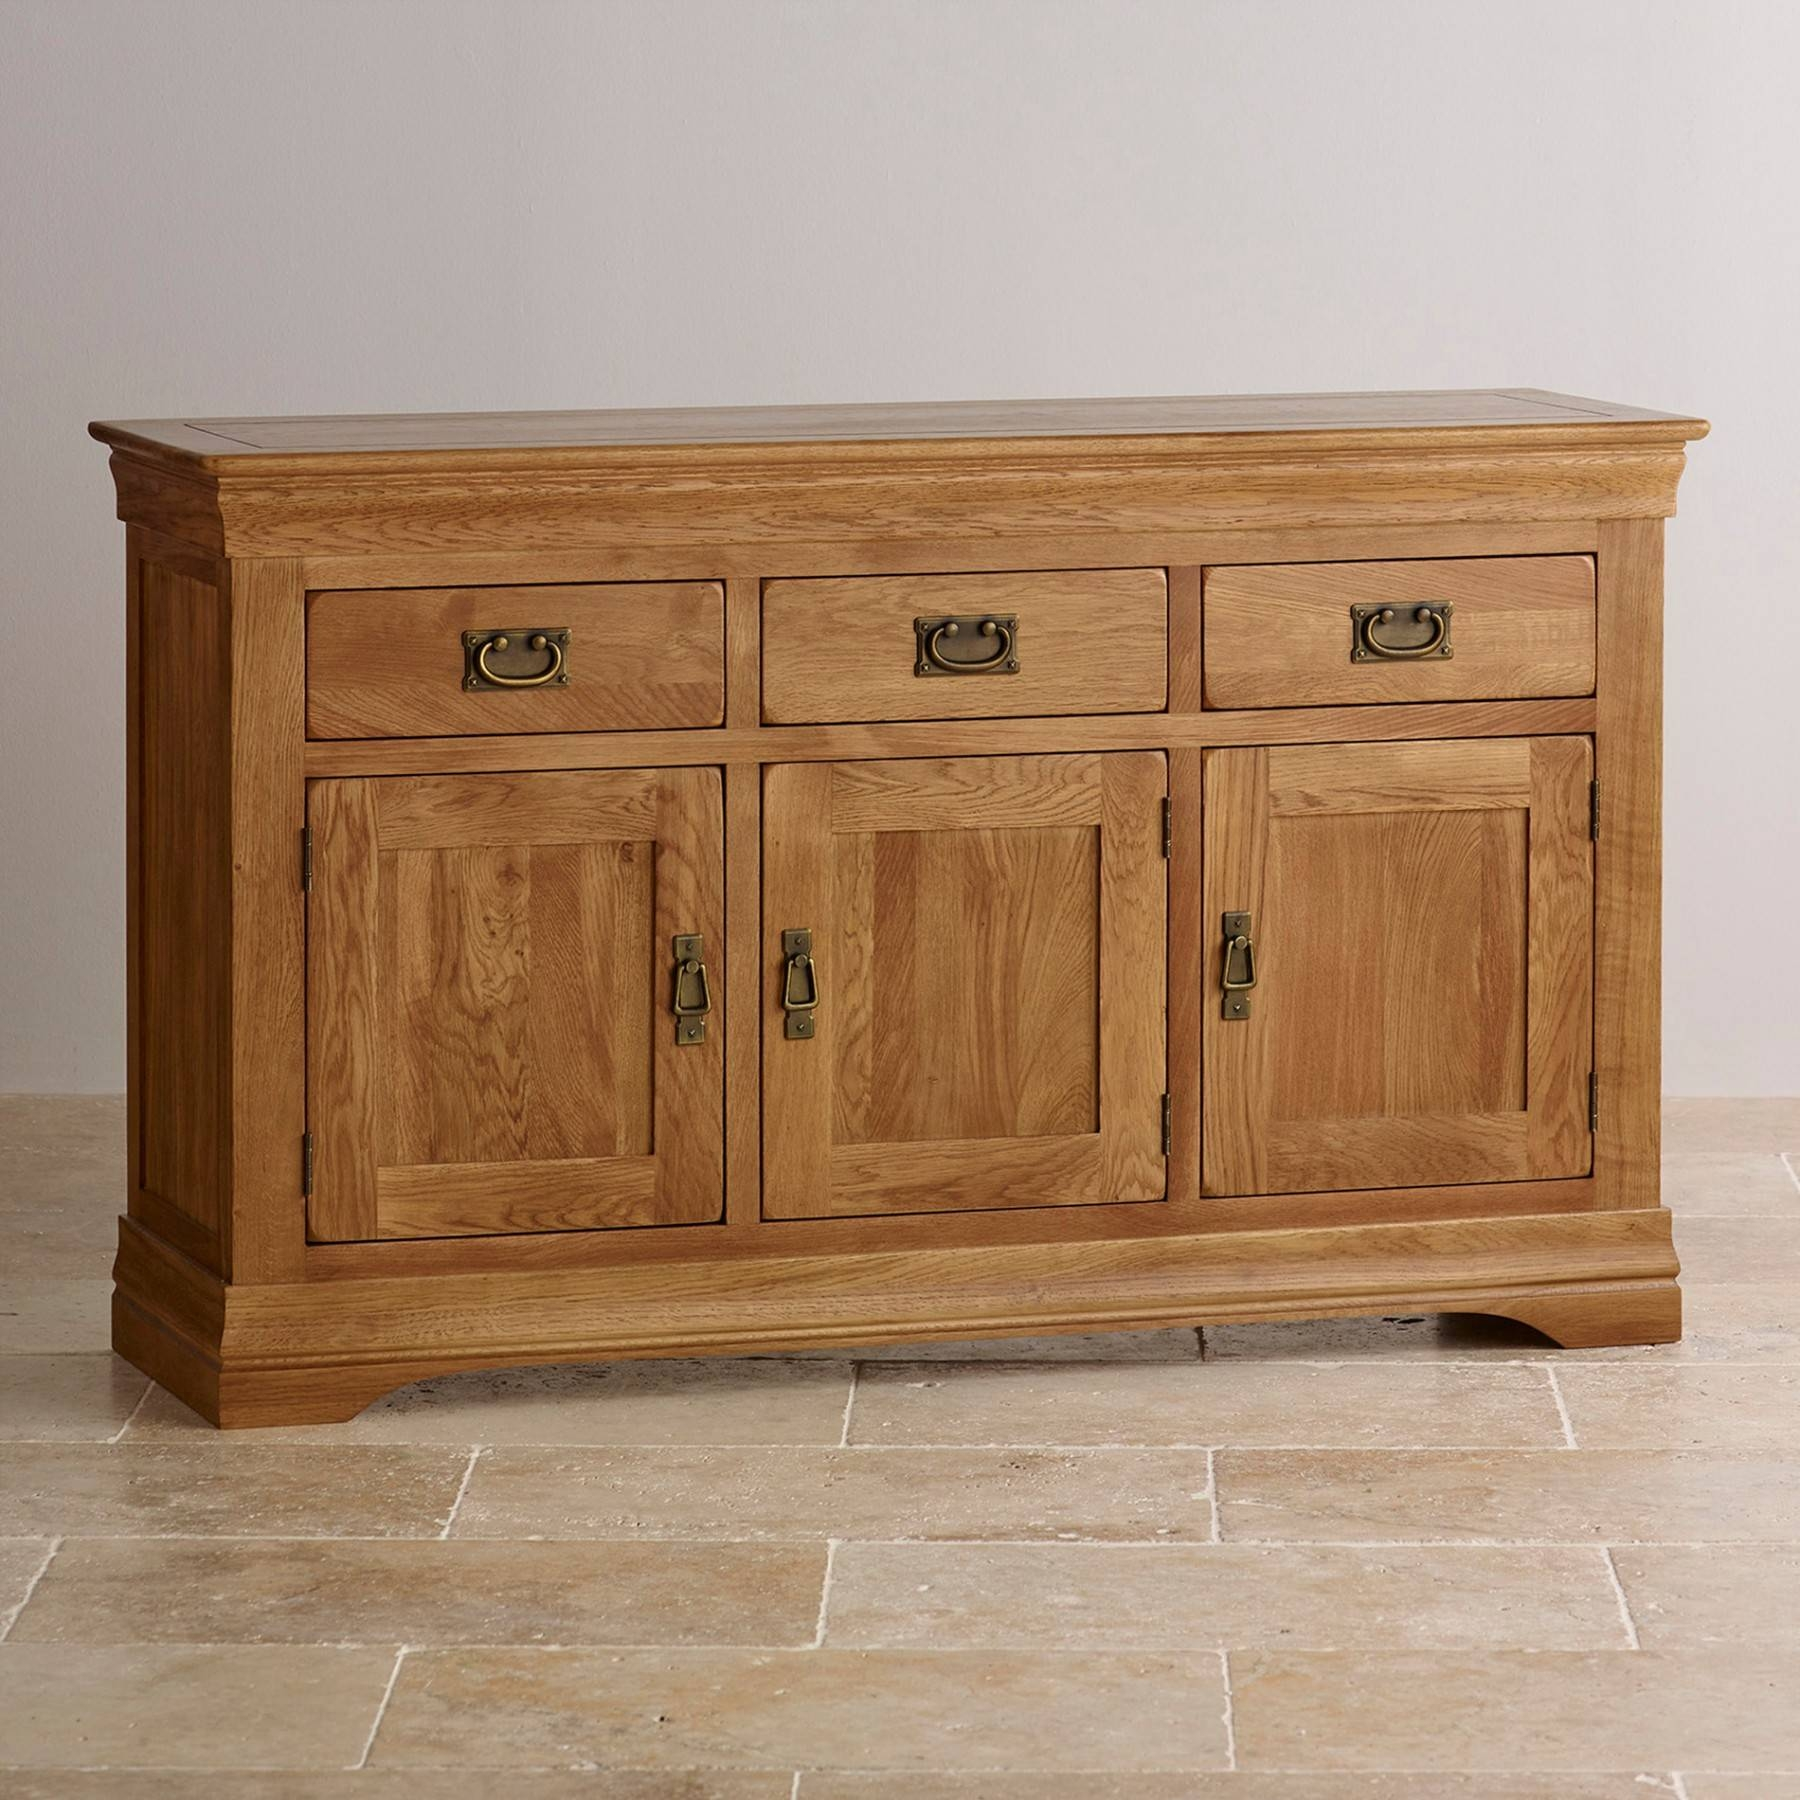 Sideboards | Oak, Mango And Painted | Oak Furniture Land Intended For Best And Newest Oak Furniture Land Sideboards (#14 of 15)